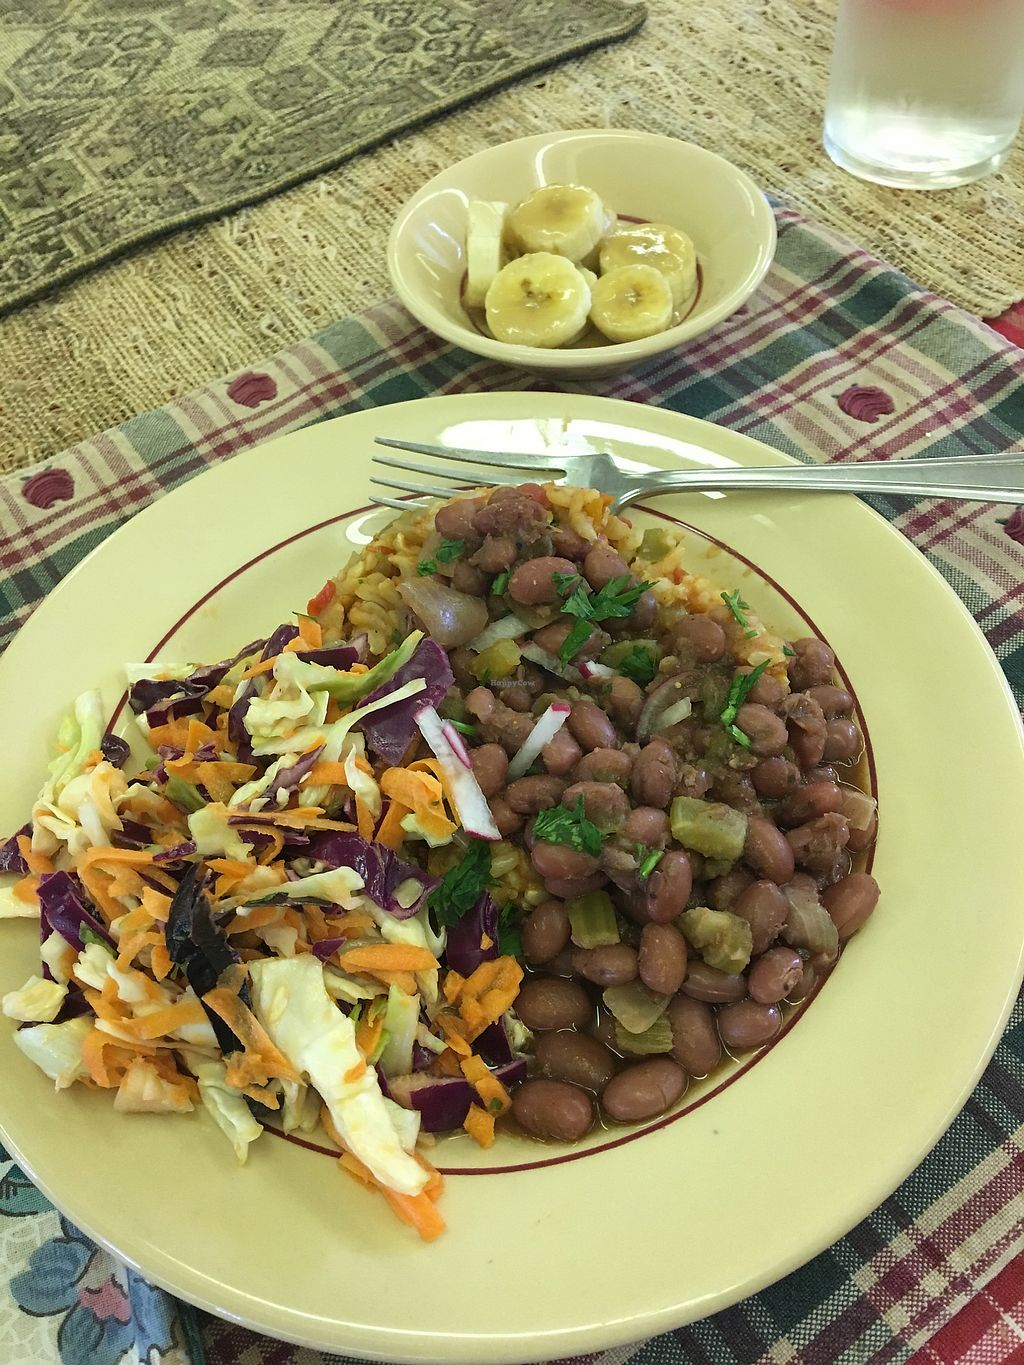 """Photo of Common Ground Community Kitchen  by <a href=""""/members/profile/MegHig"""">MegHig</a> <br/>Lunch! <br/> December 5, 2017  - <a href='/contact/abuse/image/86119/332648'>Report</a>"""